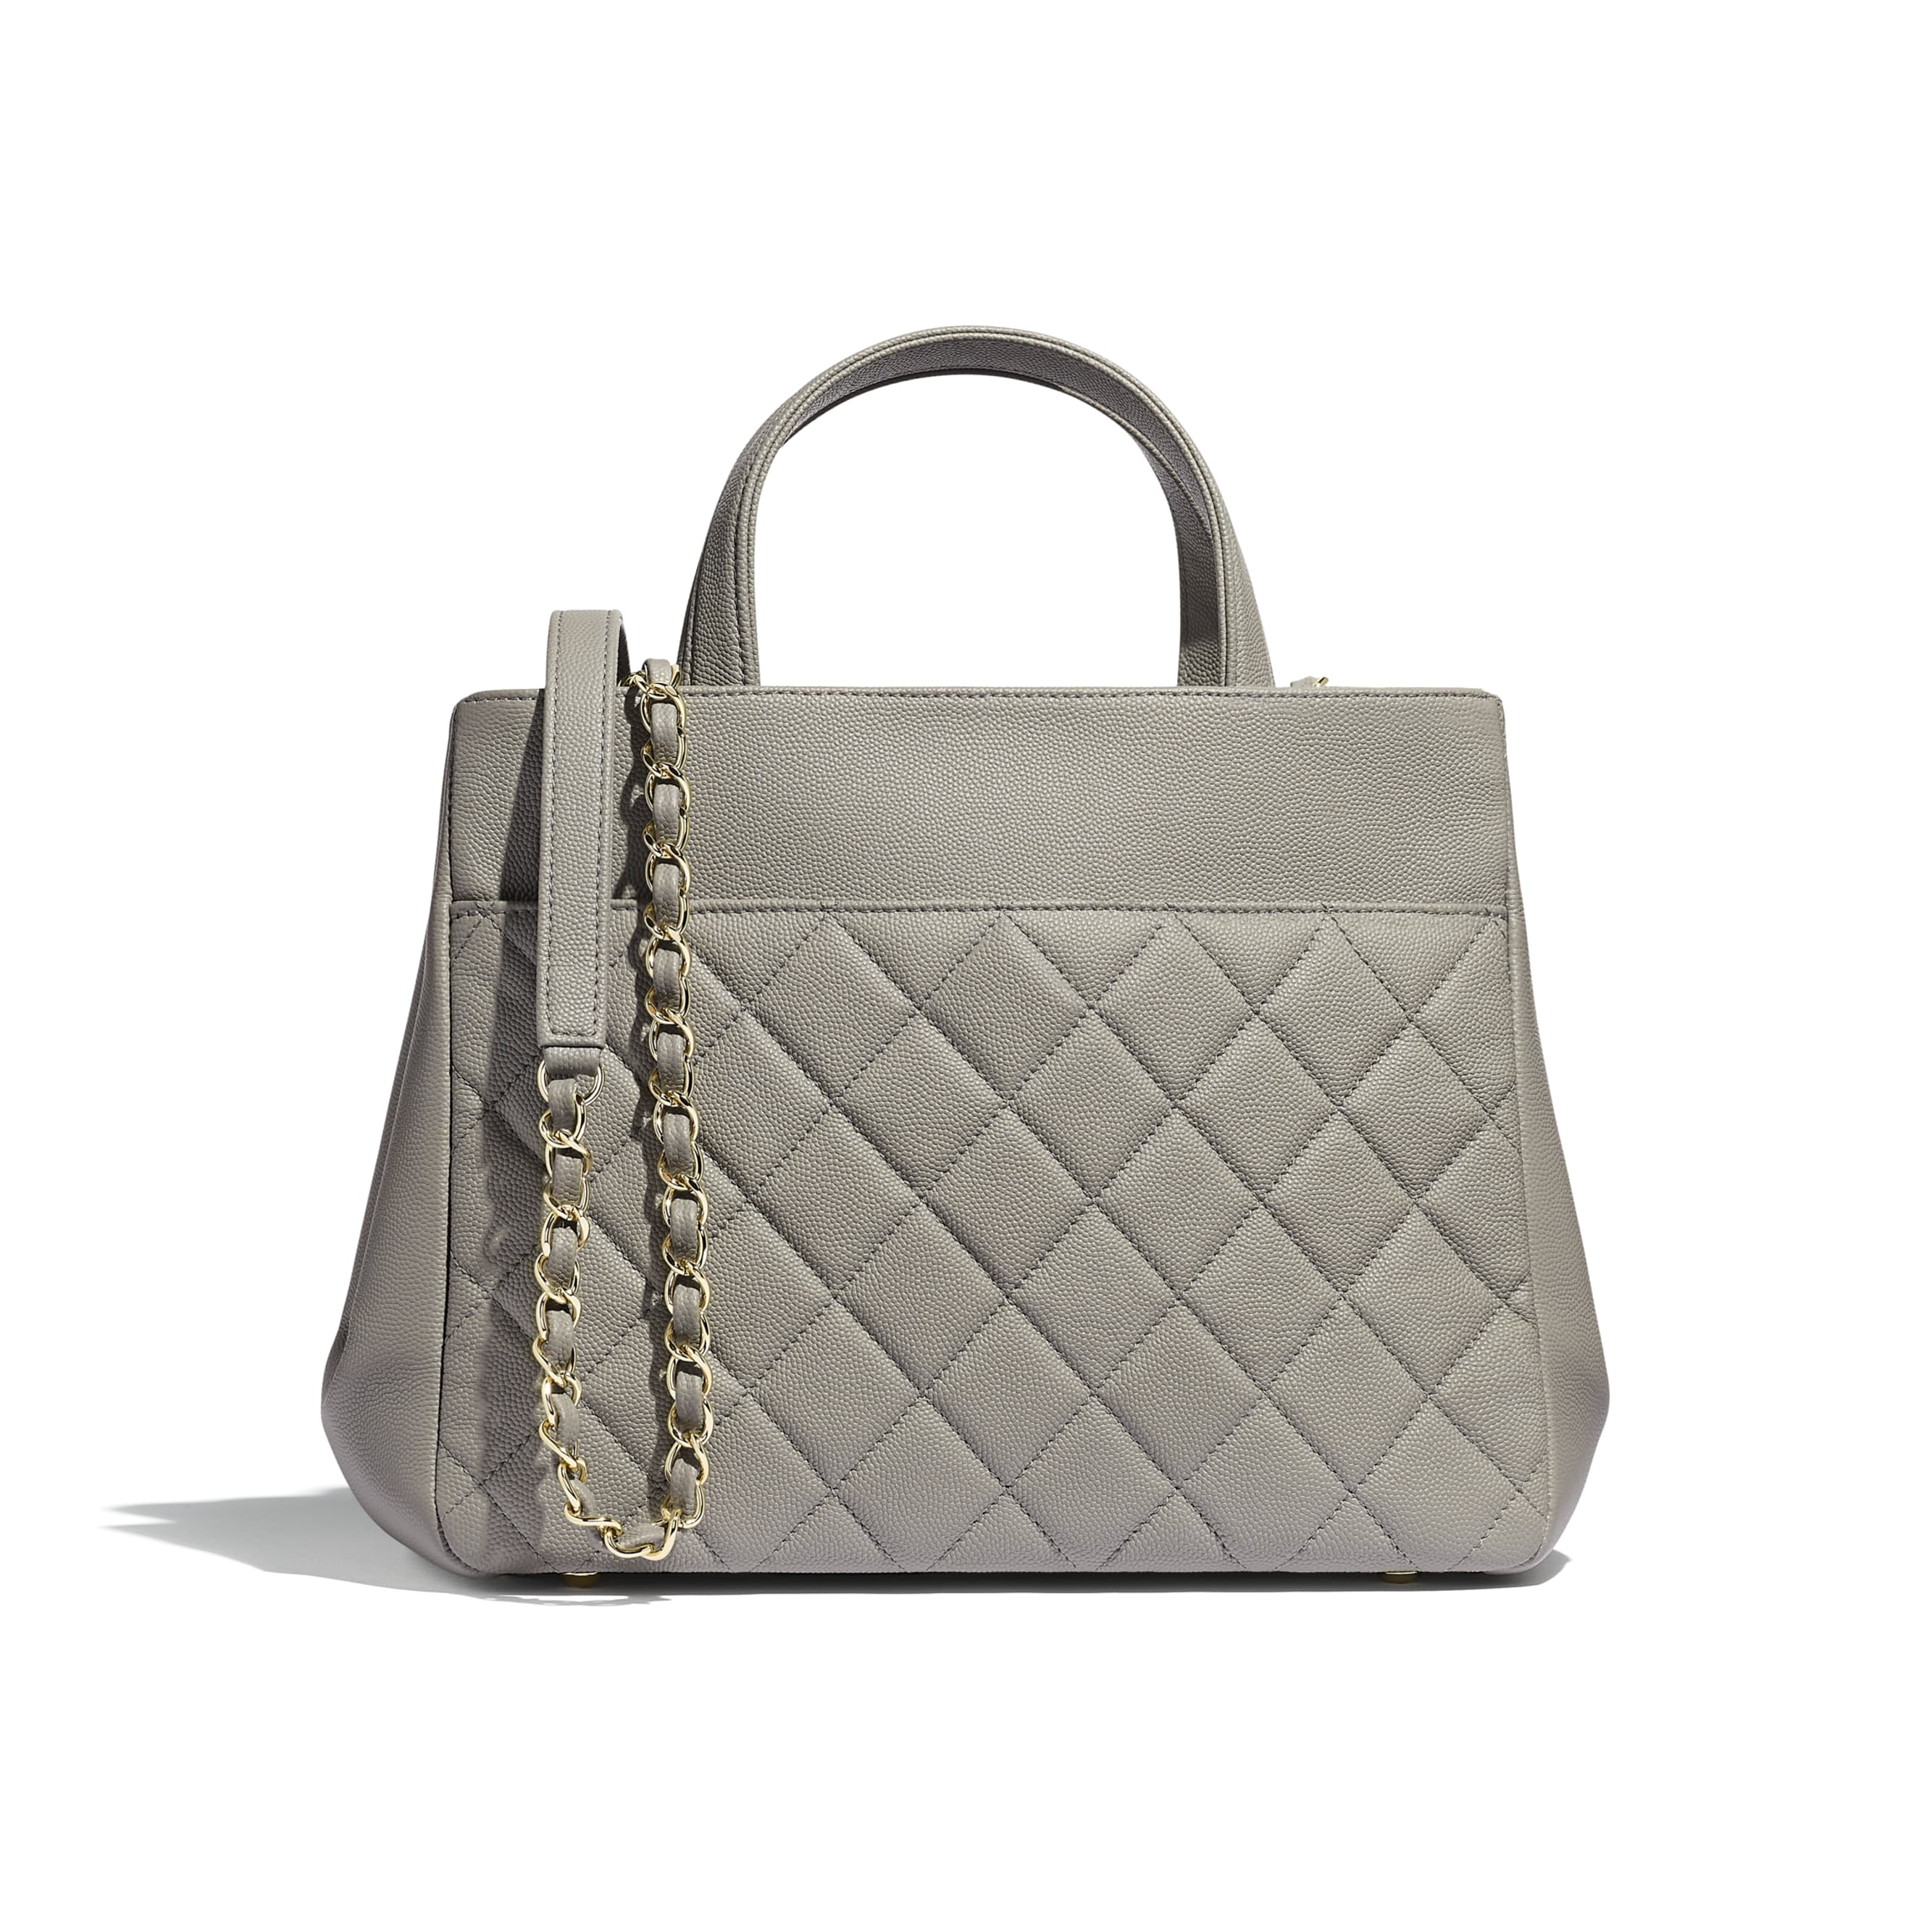 Small Shopping Bag - Gray - Grained Calfskin & Gold-Tone Metal - Alternative view - see standard sized version